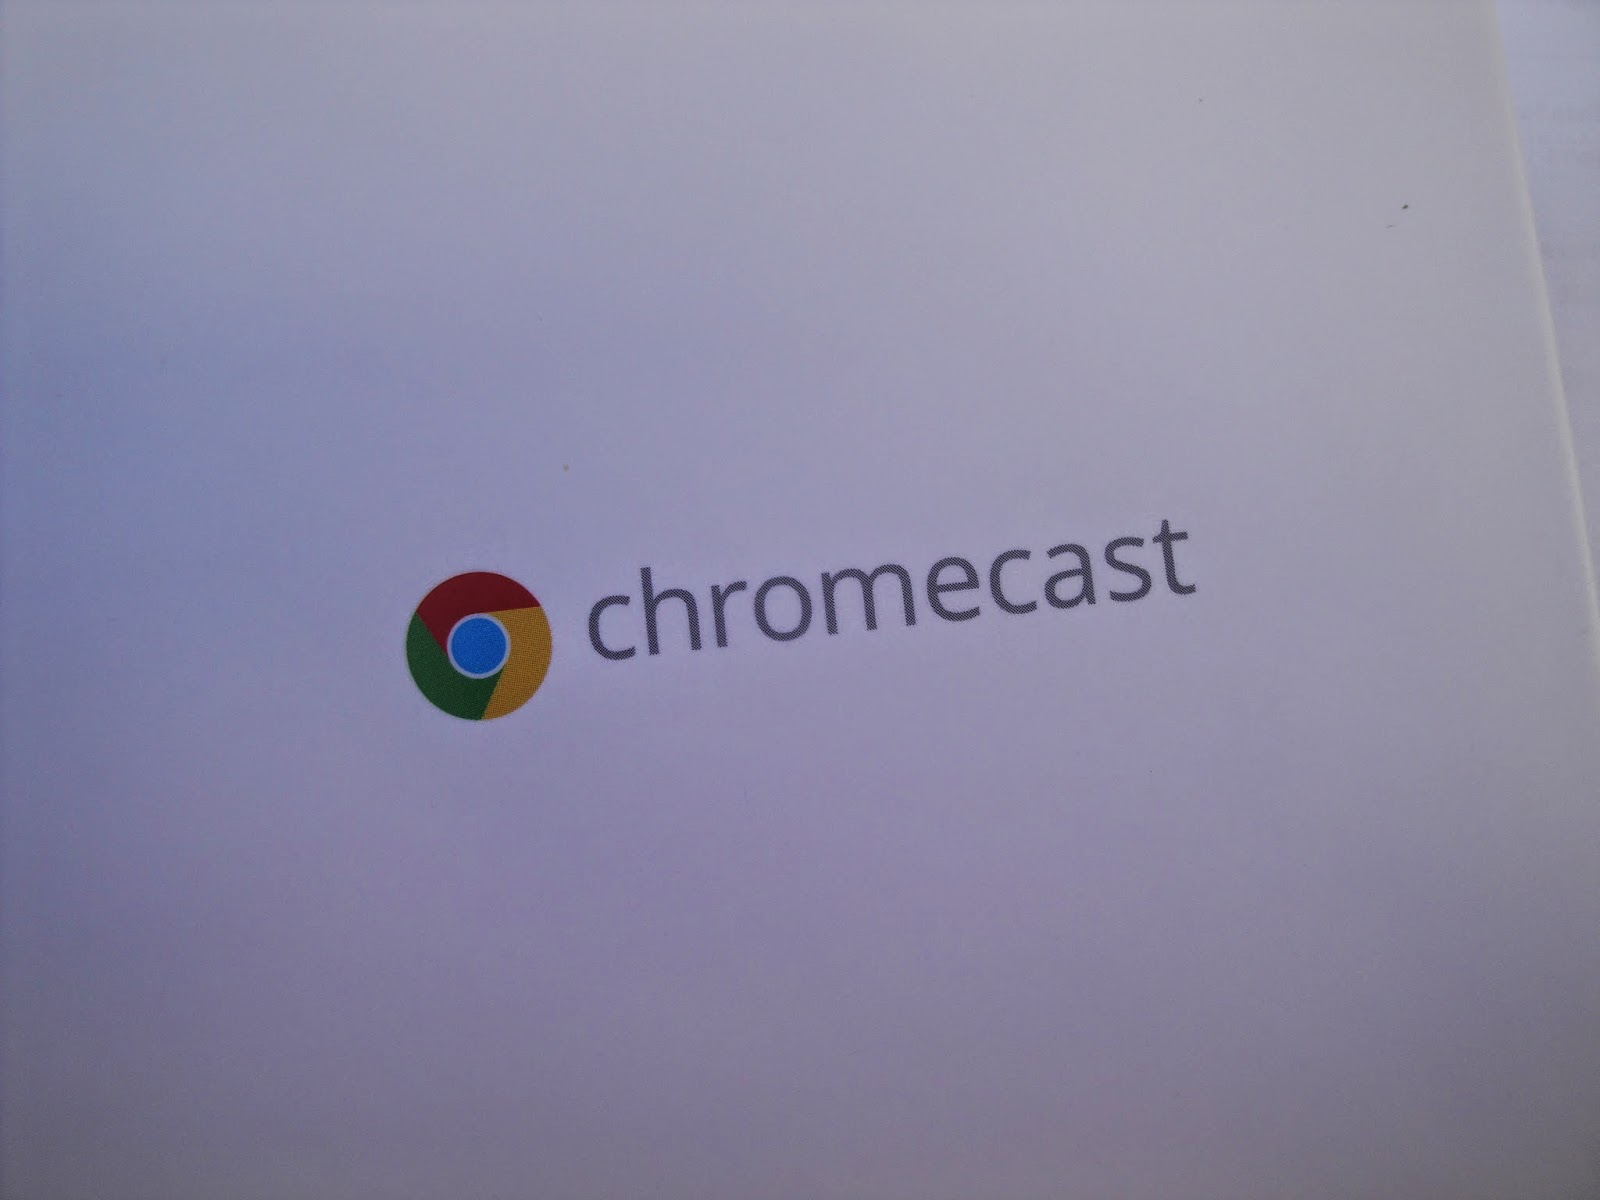 Caixa do chromecast®